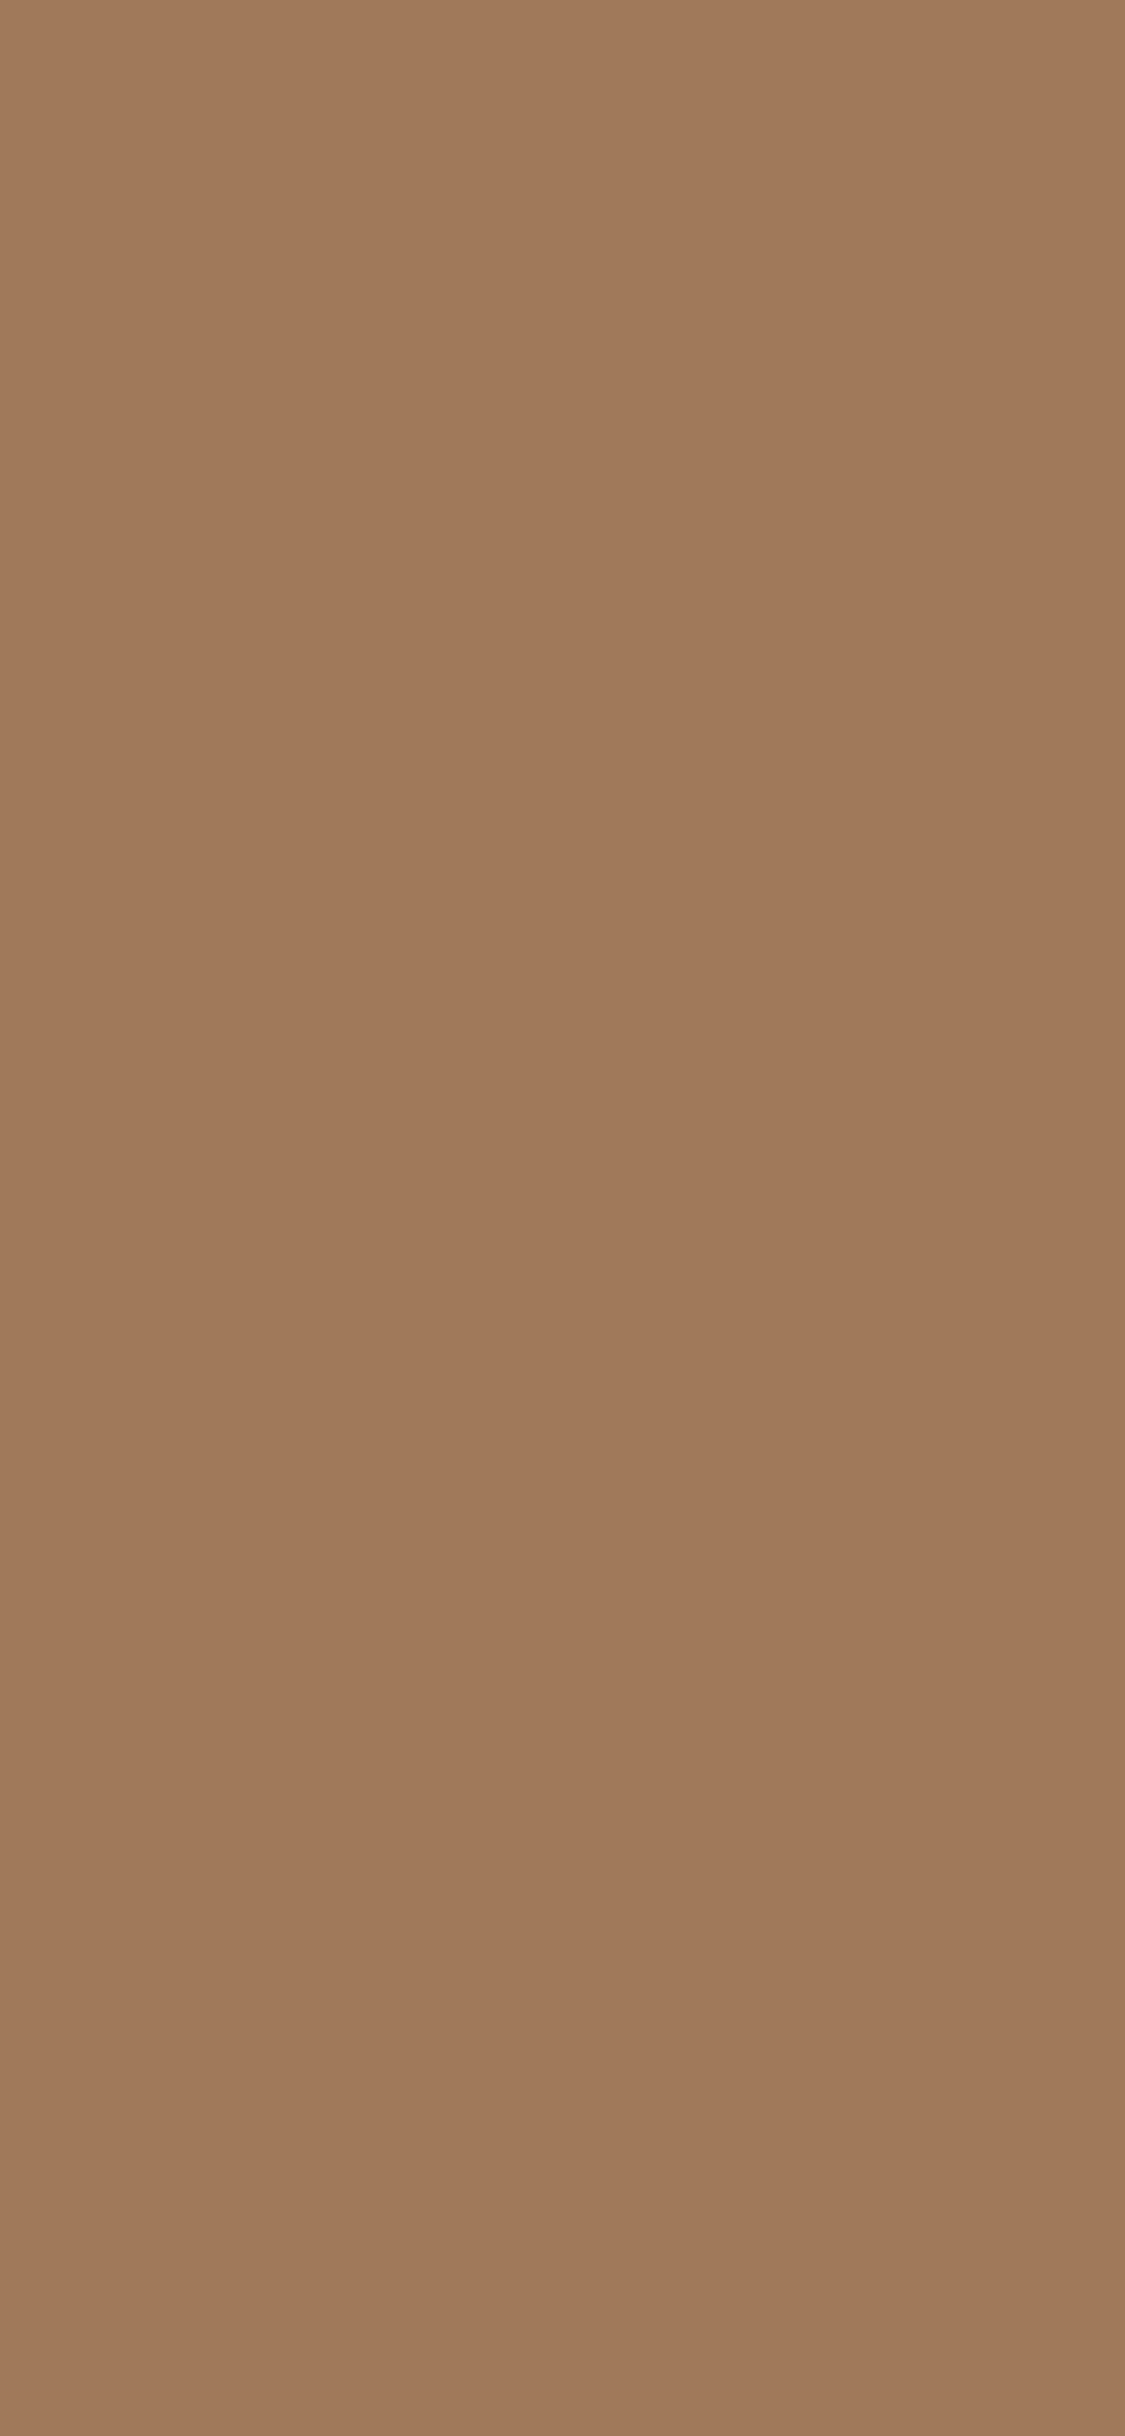 1125x2436 Chamoisee Solid Color Background